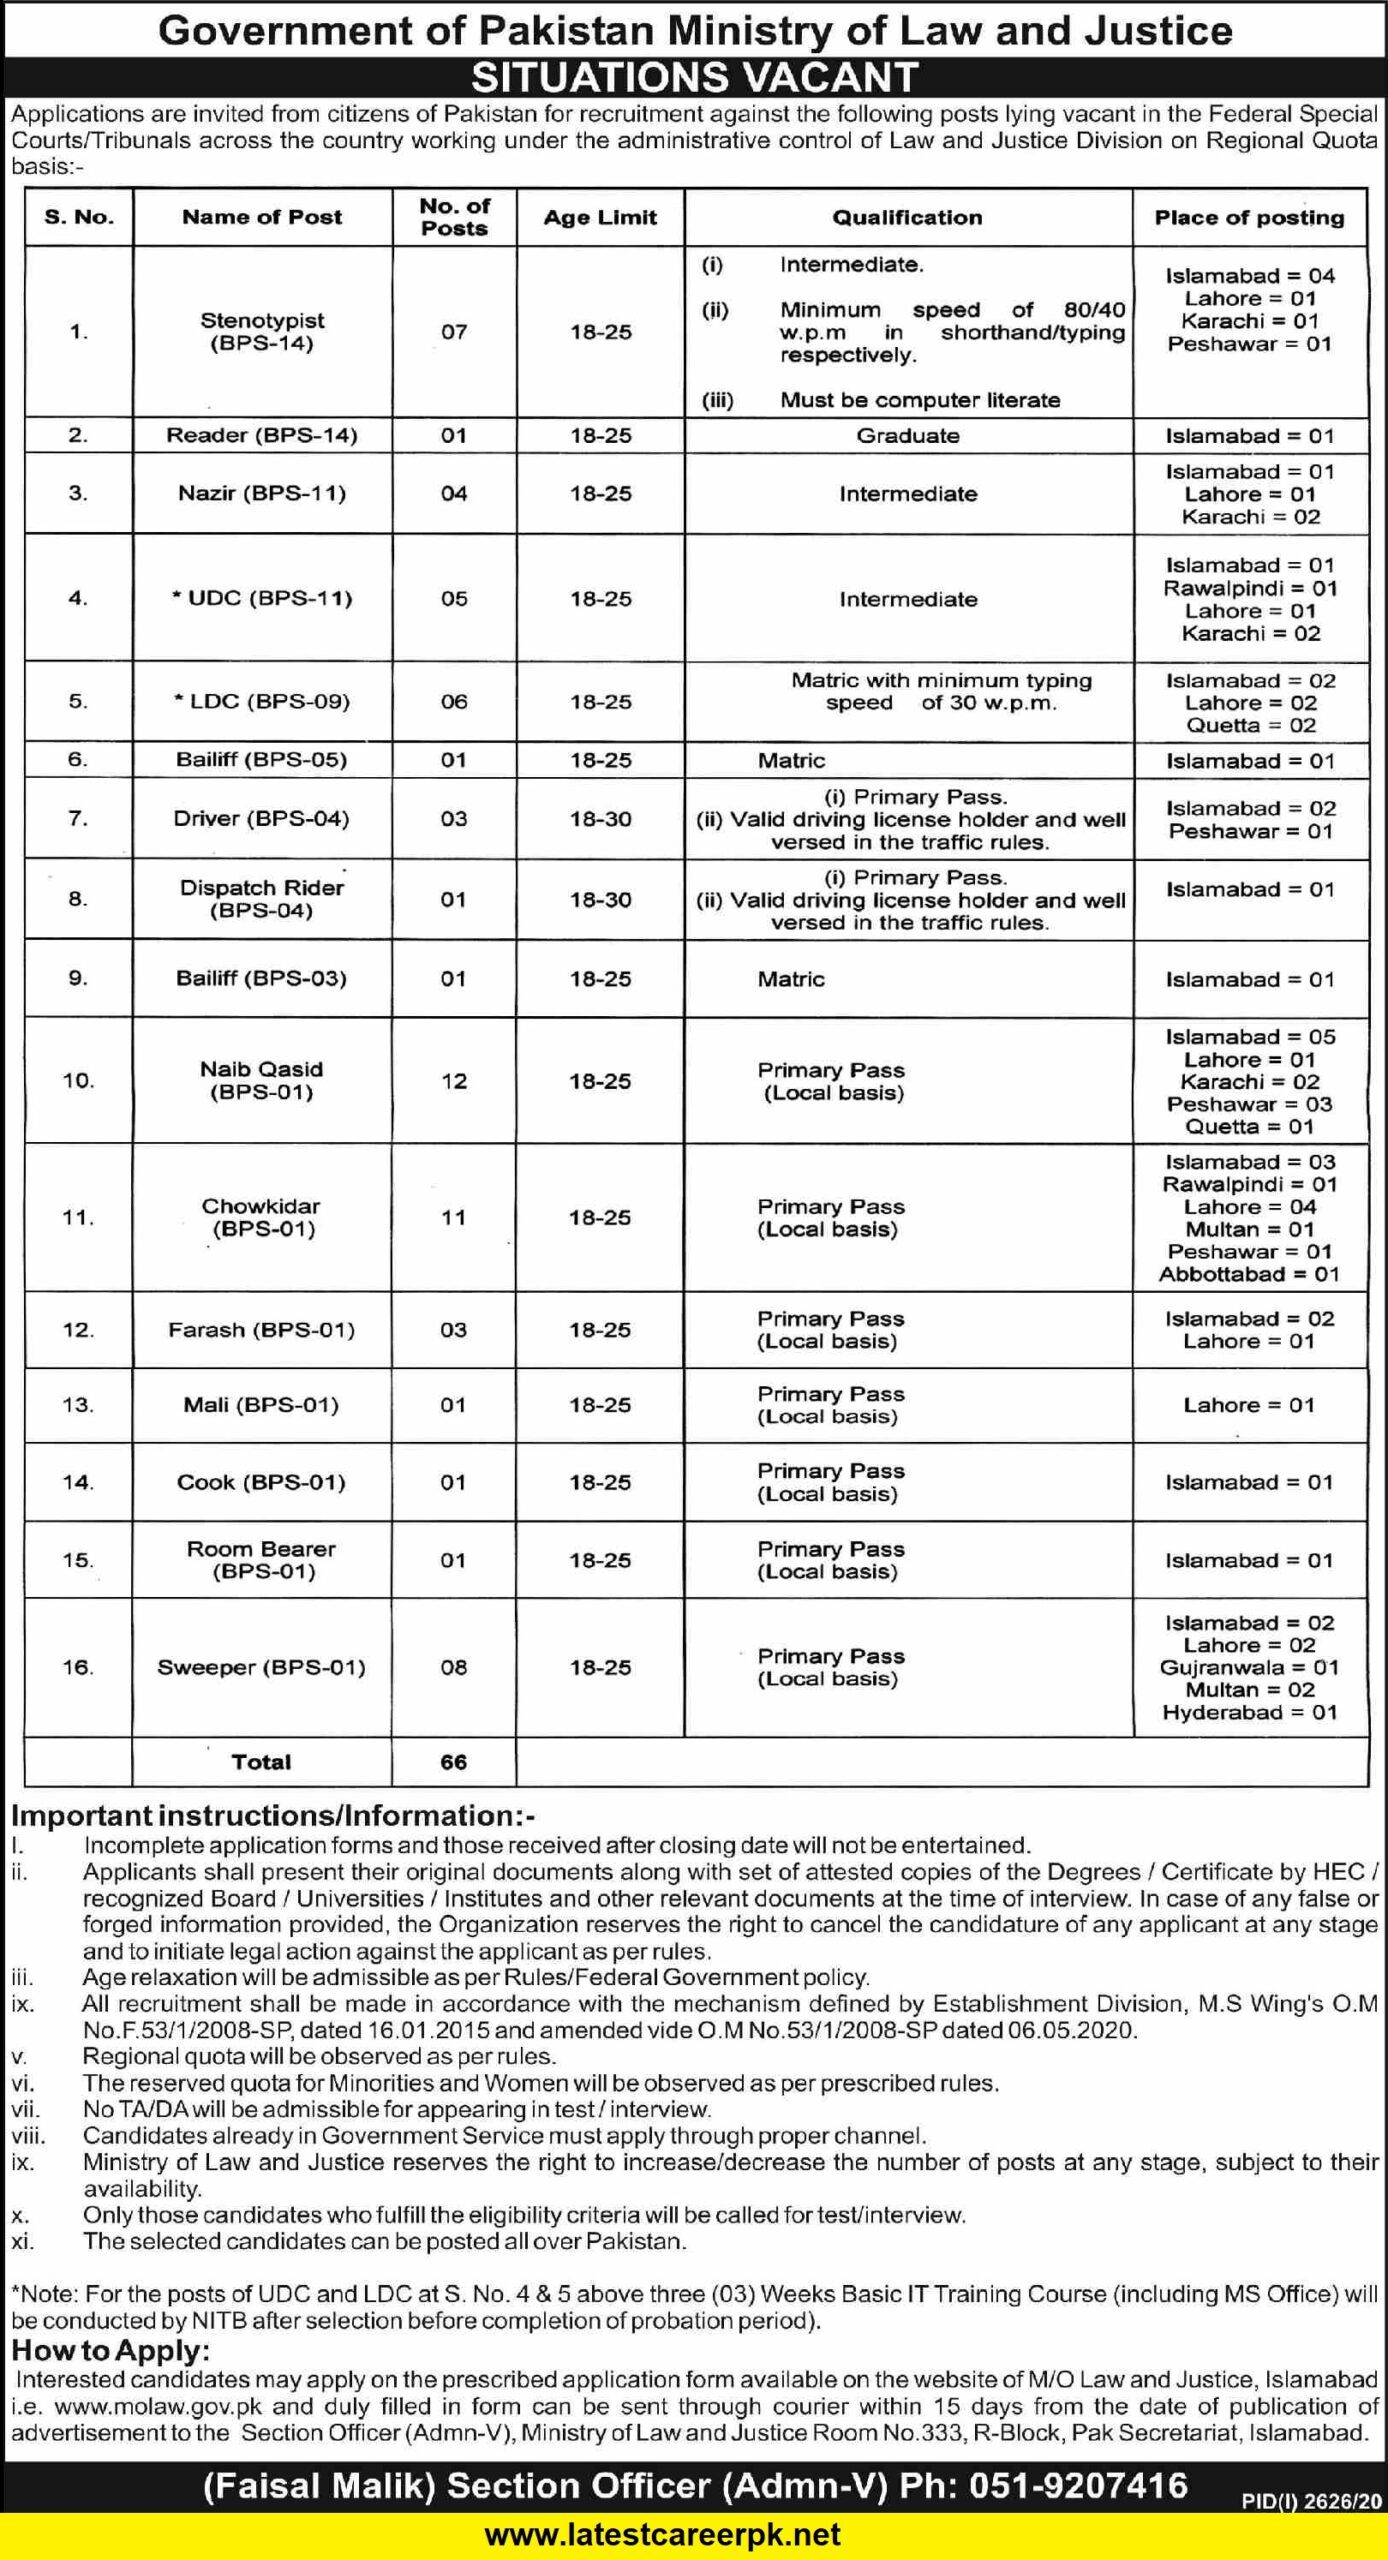 Federal-Special-Courts-FSC-Islamabad-Jobs-20-Nov-2020